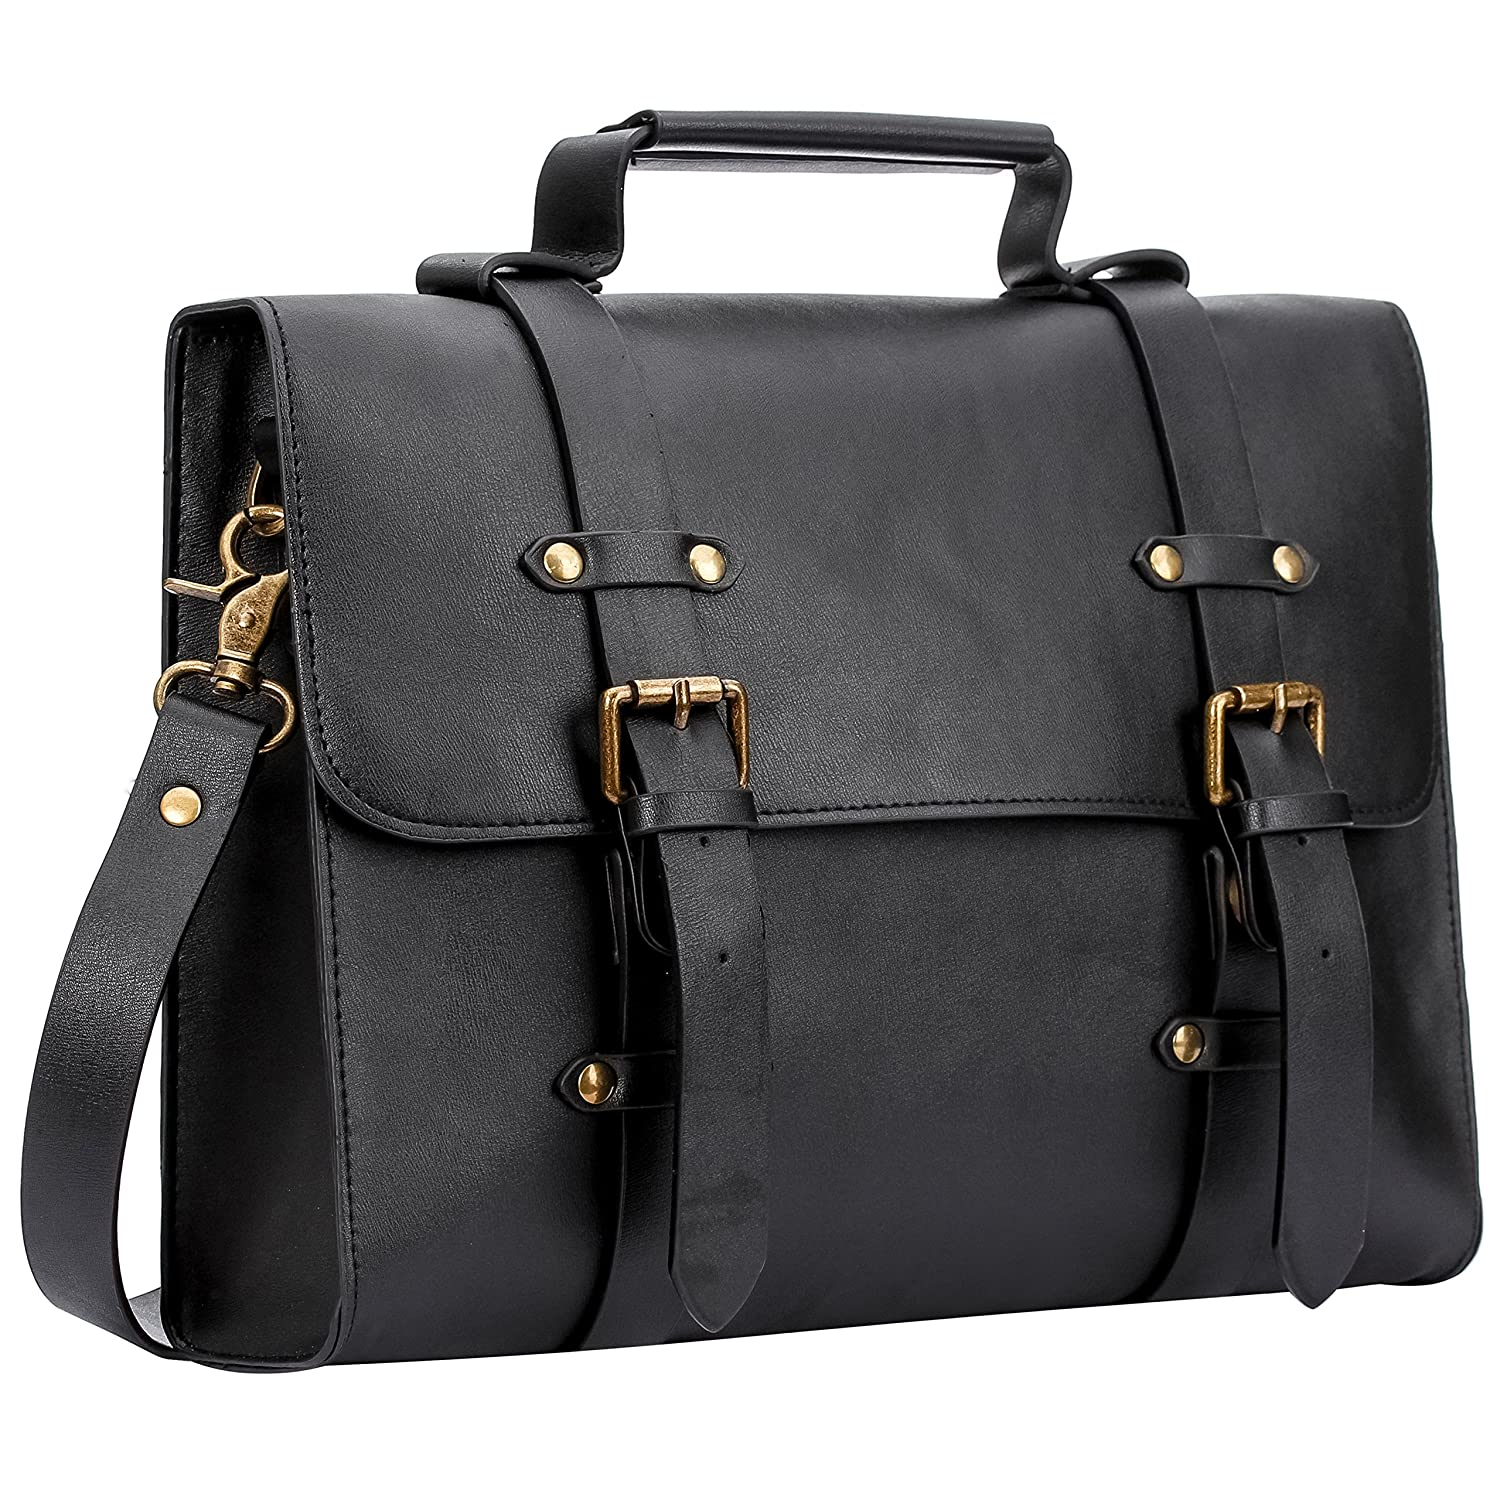 Women's PU Leather Laptop Bag Tote Messenger Bag Crossbody Satchel Briefcase Handbag (Black